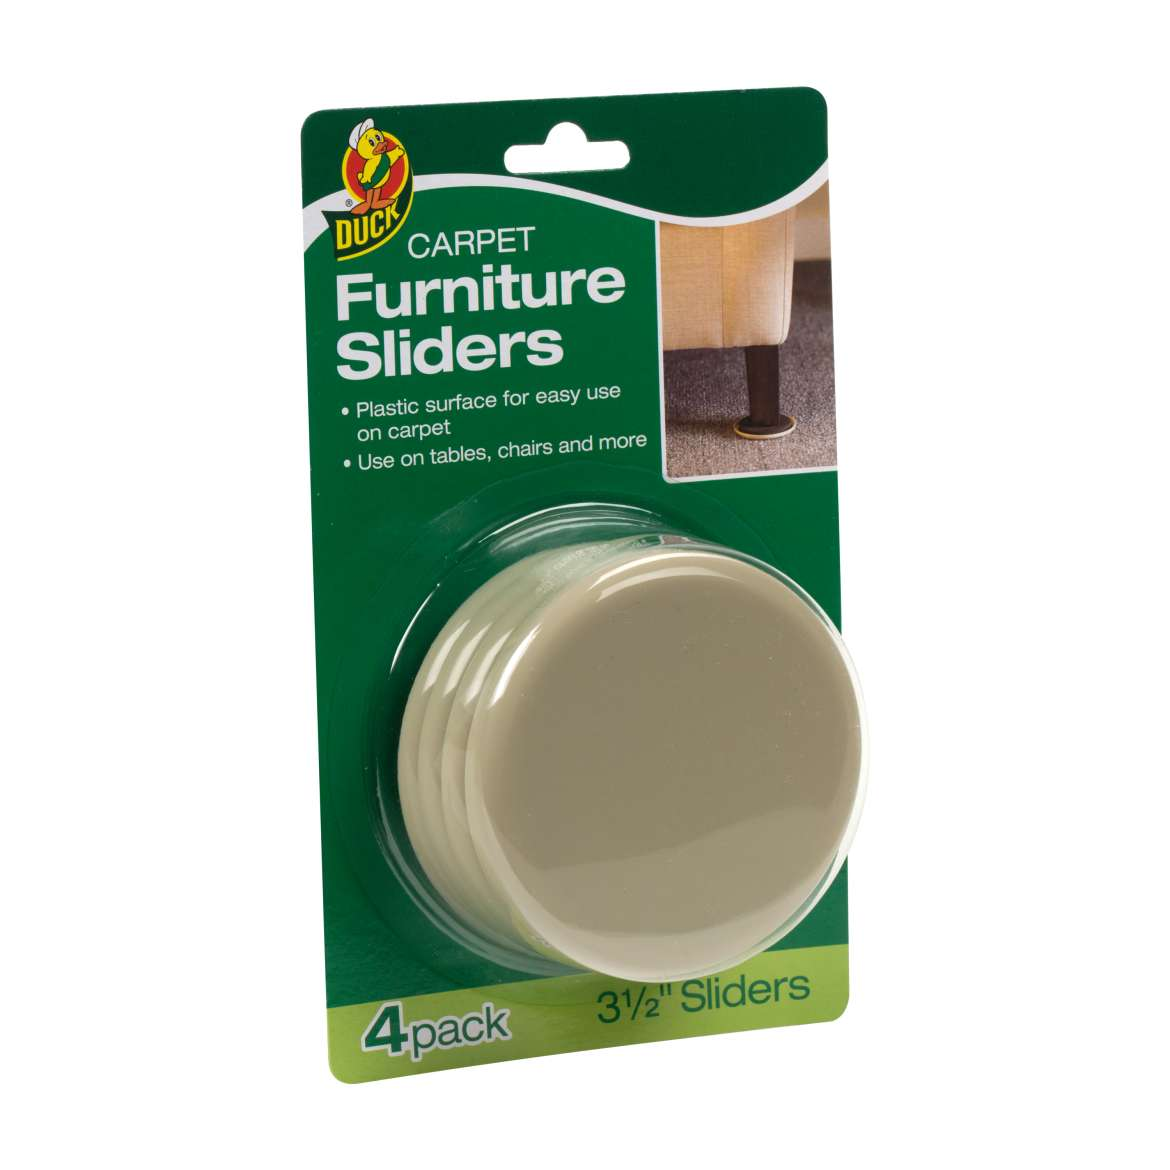 Duck® Brand Carpet Furniture Sliders Image